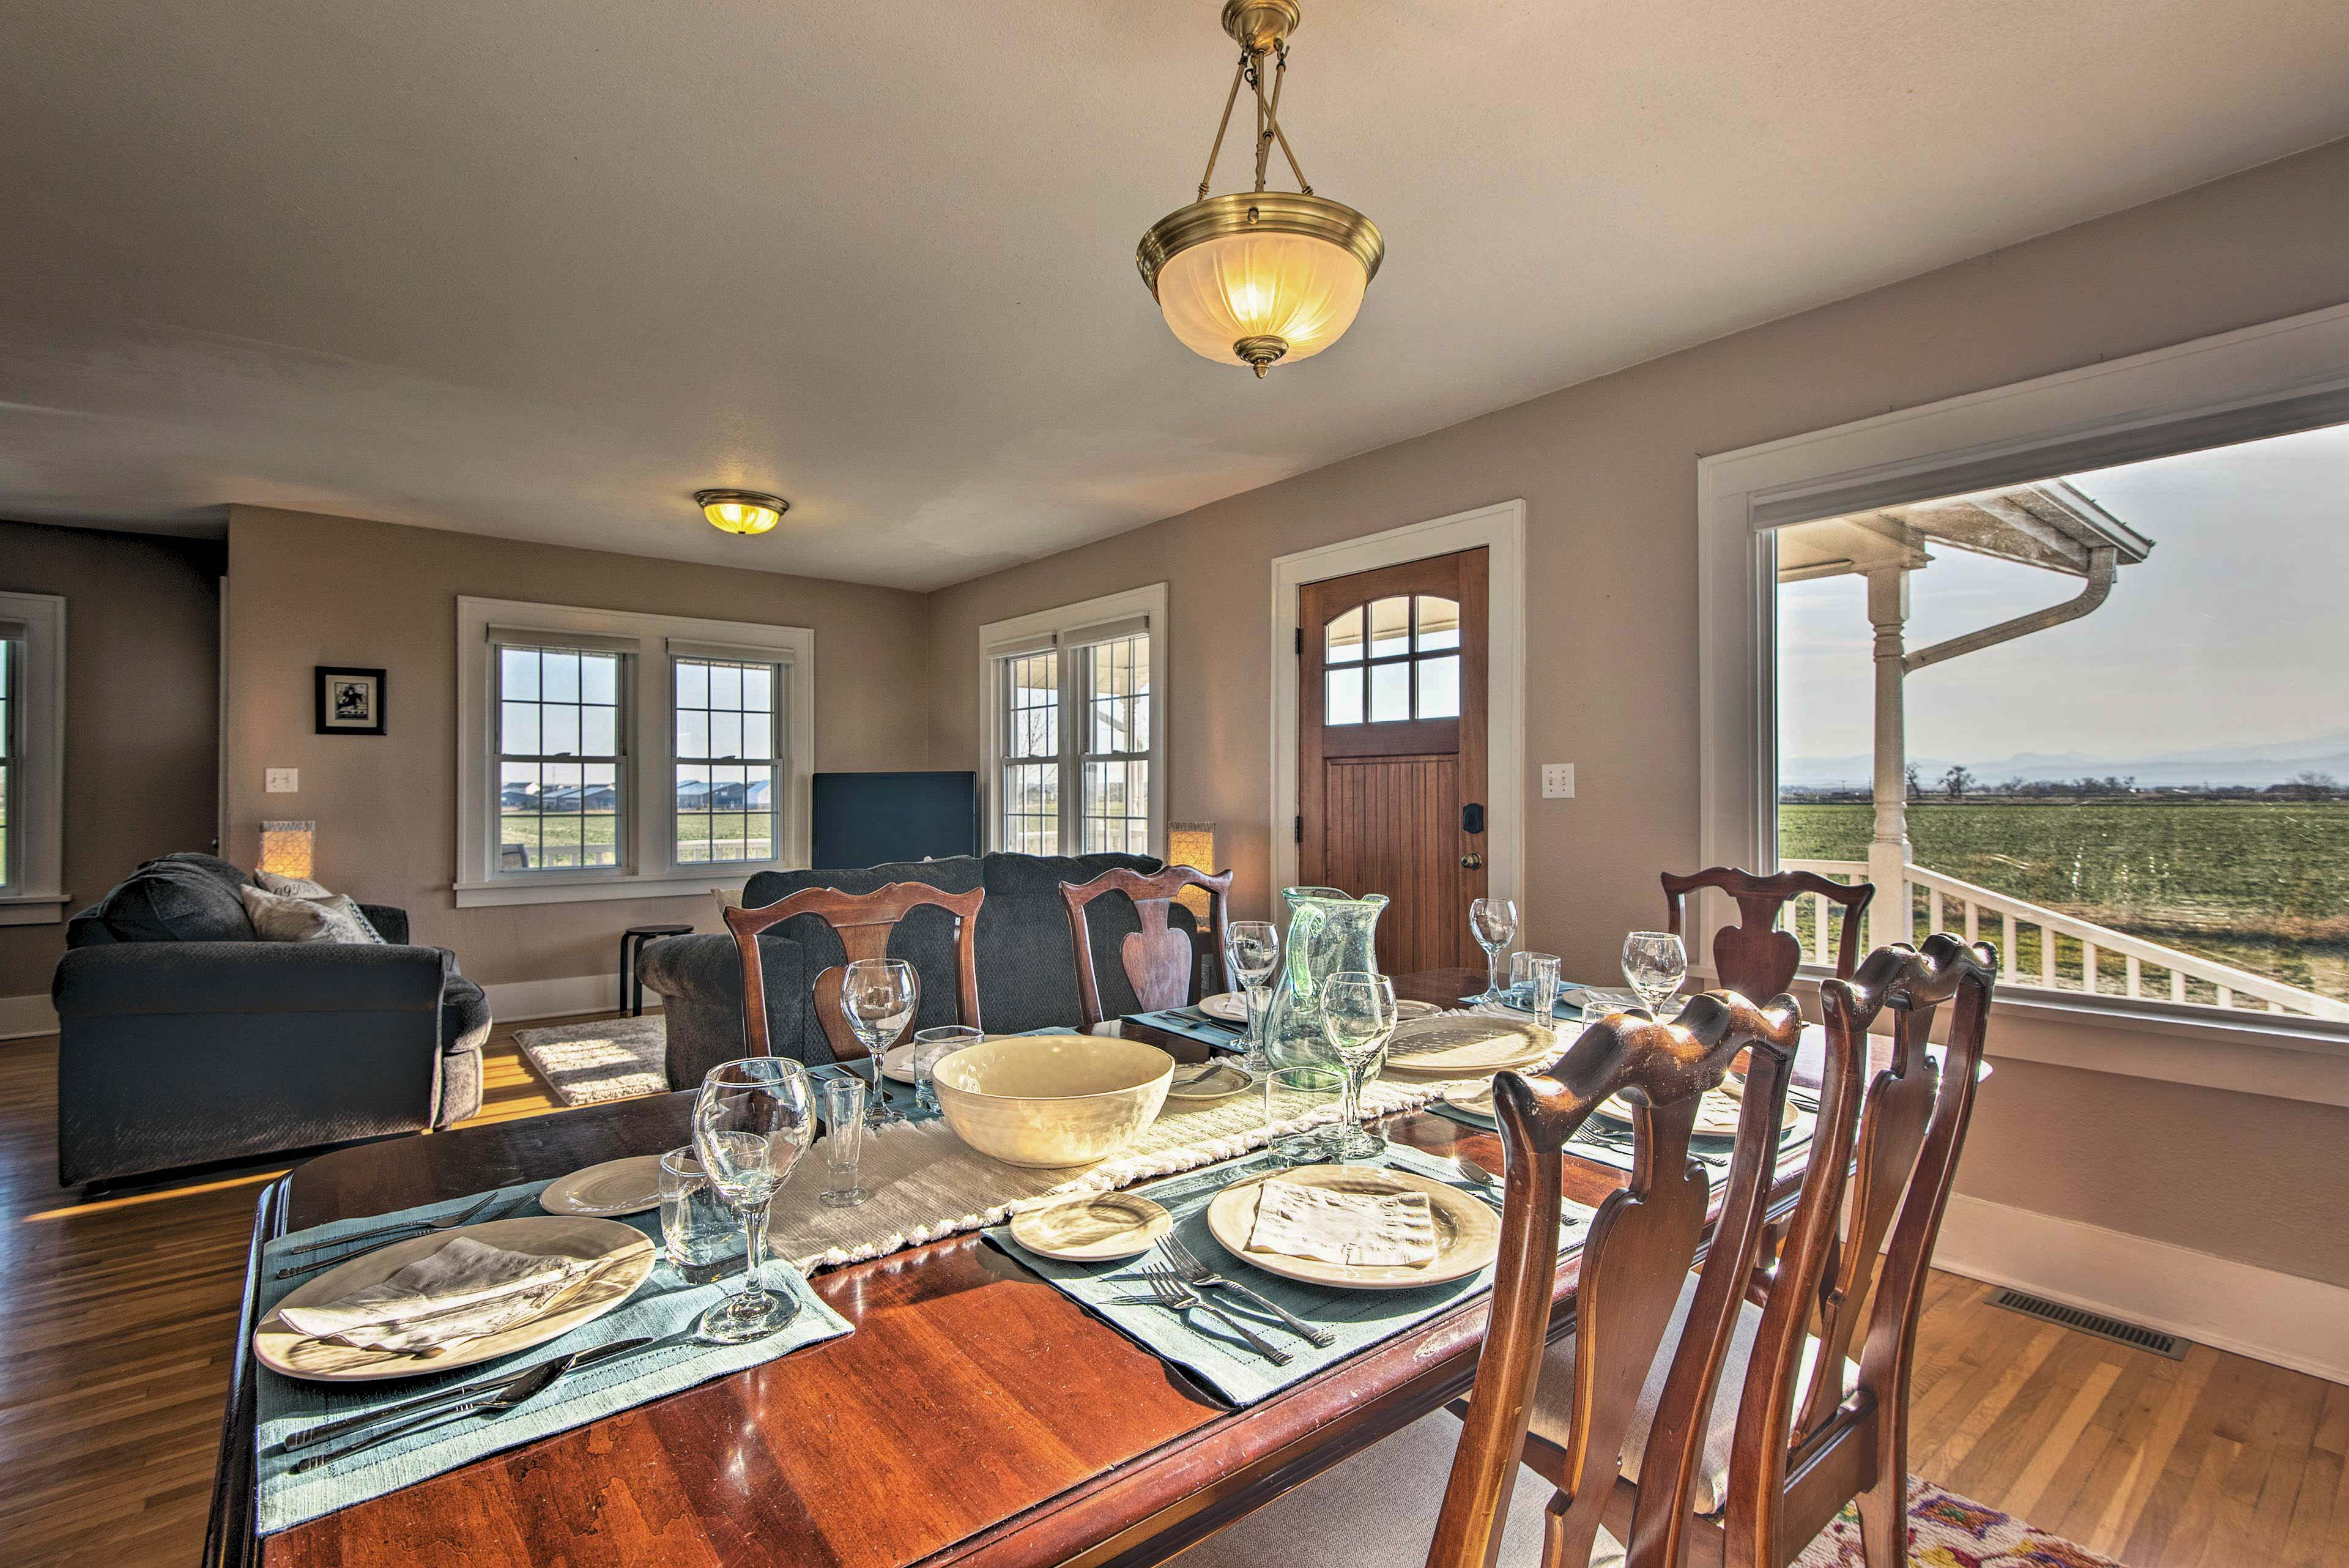 Admire prime pastoral views through the clear window!